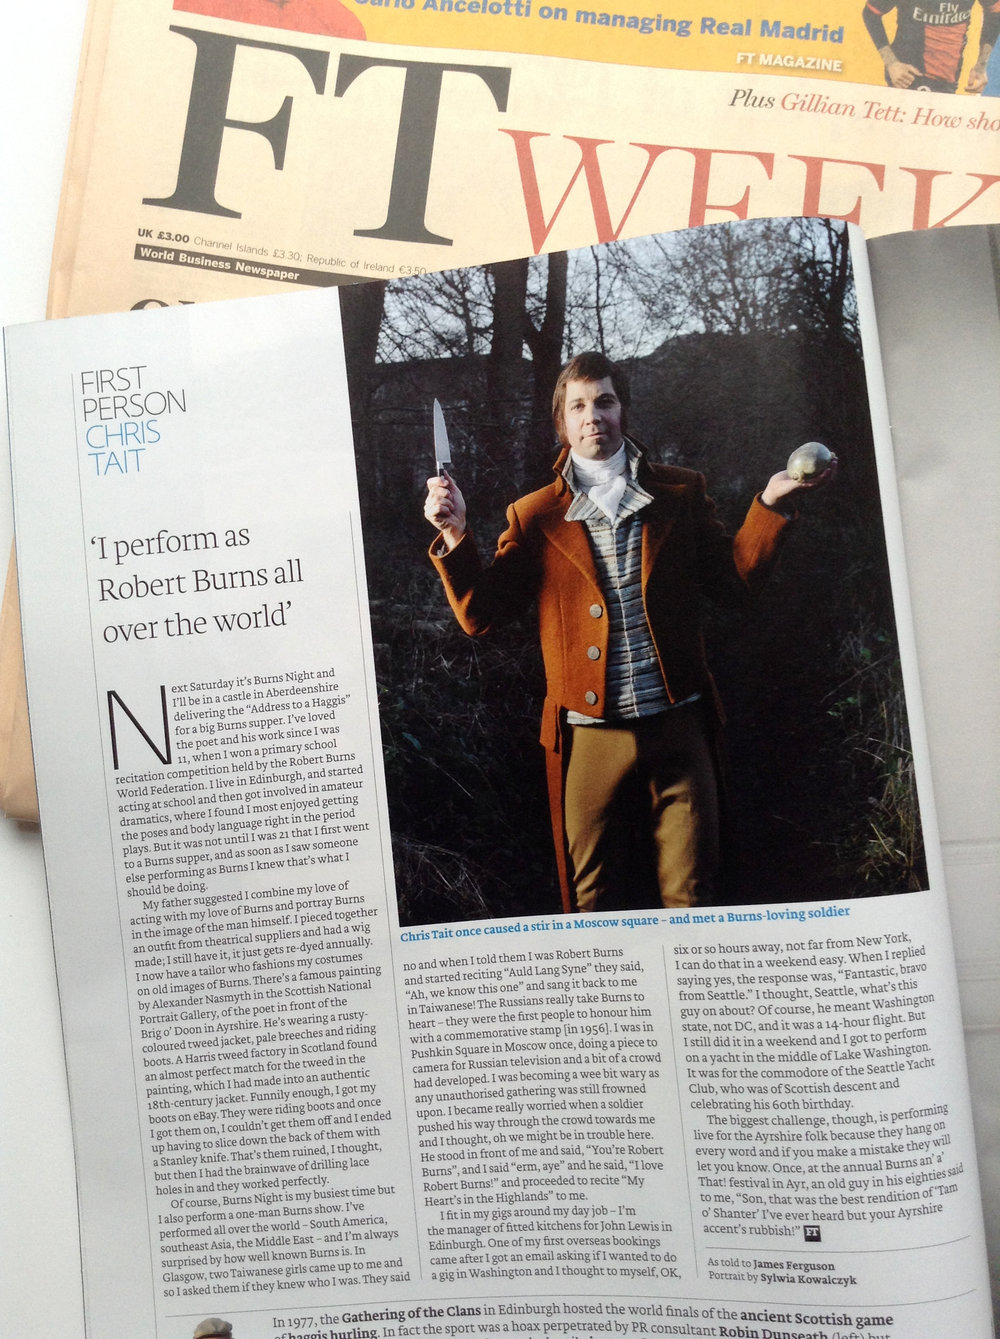 Chris Tait, Robert Burns impersonator, for the FT Weekend Magazine